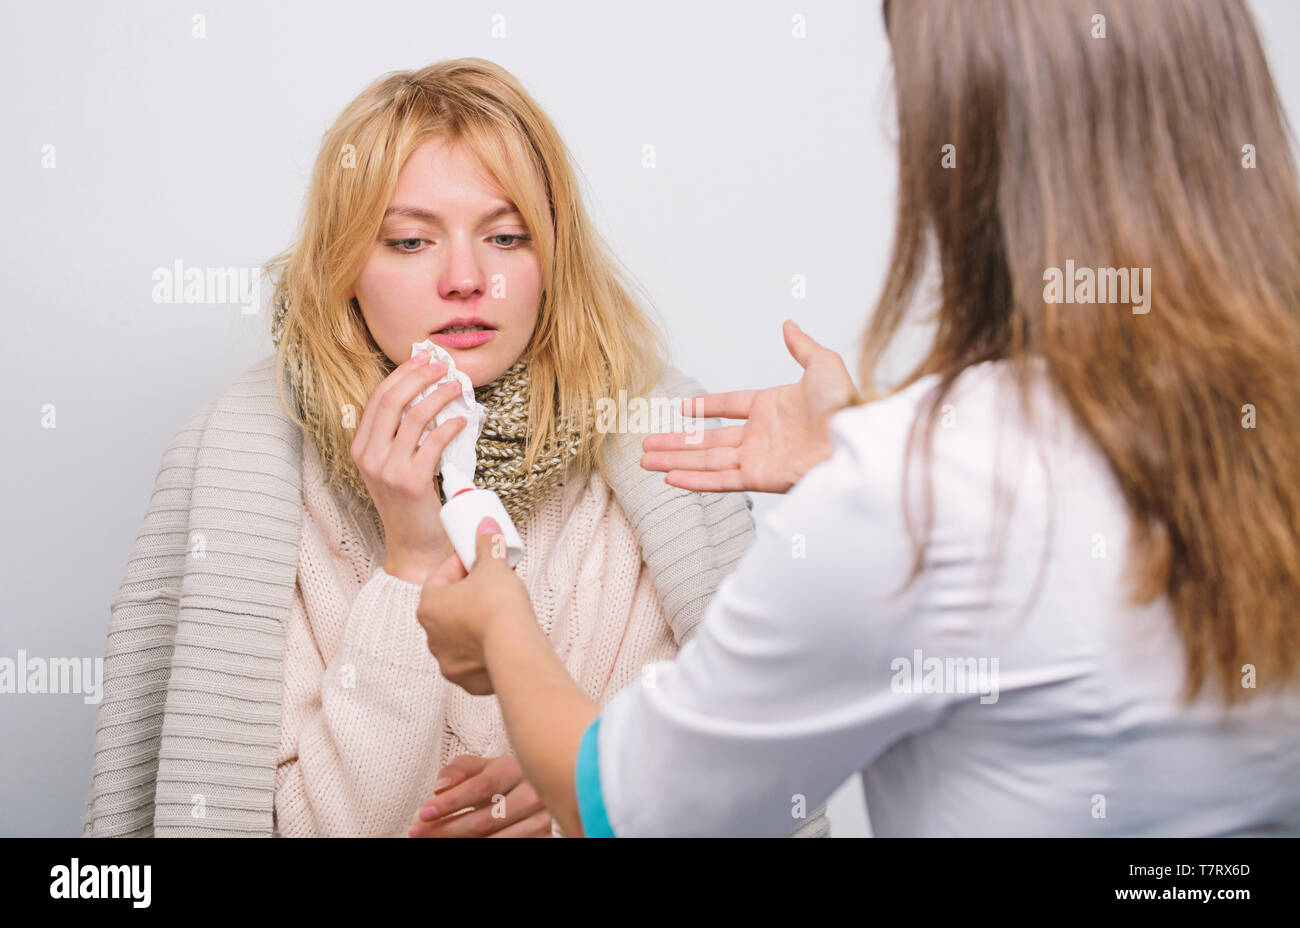 It will help her to breathe. Doctor visiting unhealthy woman at home. Medical doctor examining patient. Primary care doctor making diagnosis to sick woman. Patient care and healthcare. - Stock Image